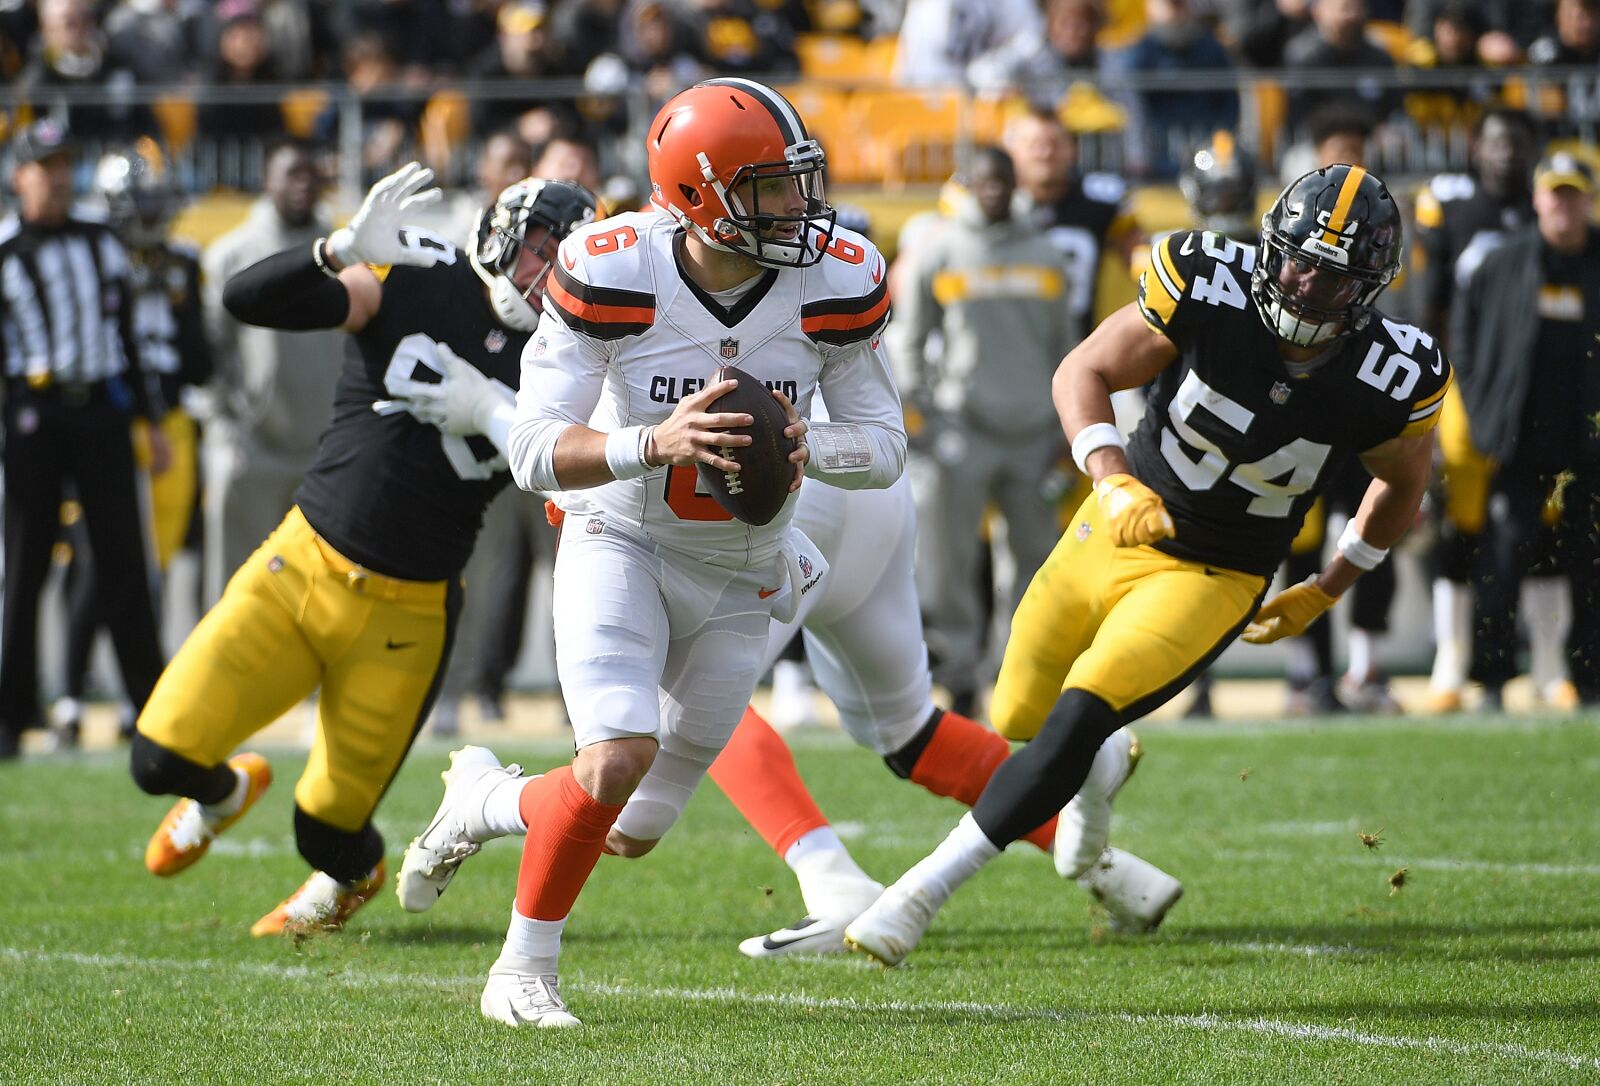 Denzel Ward, Myles Garrett are young challengers for the Chiefs great offense